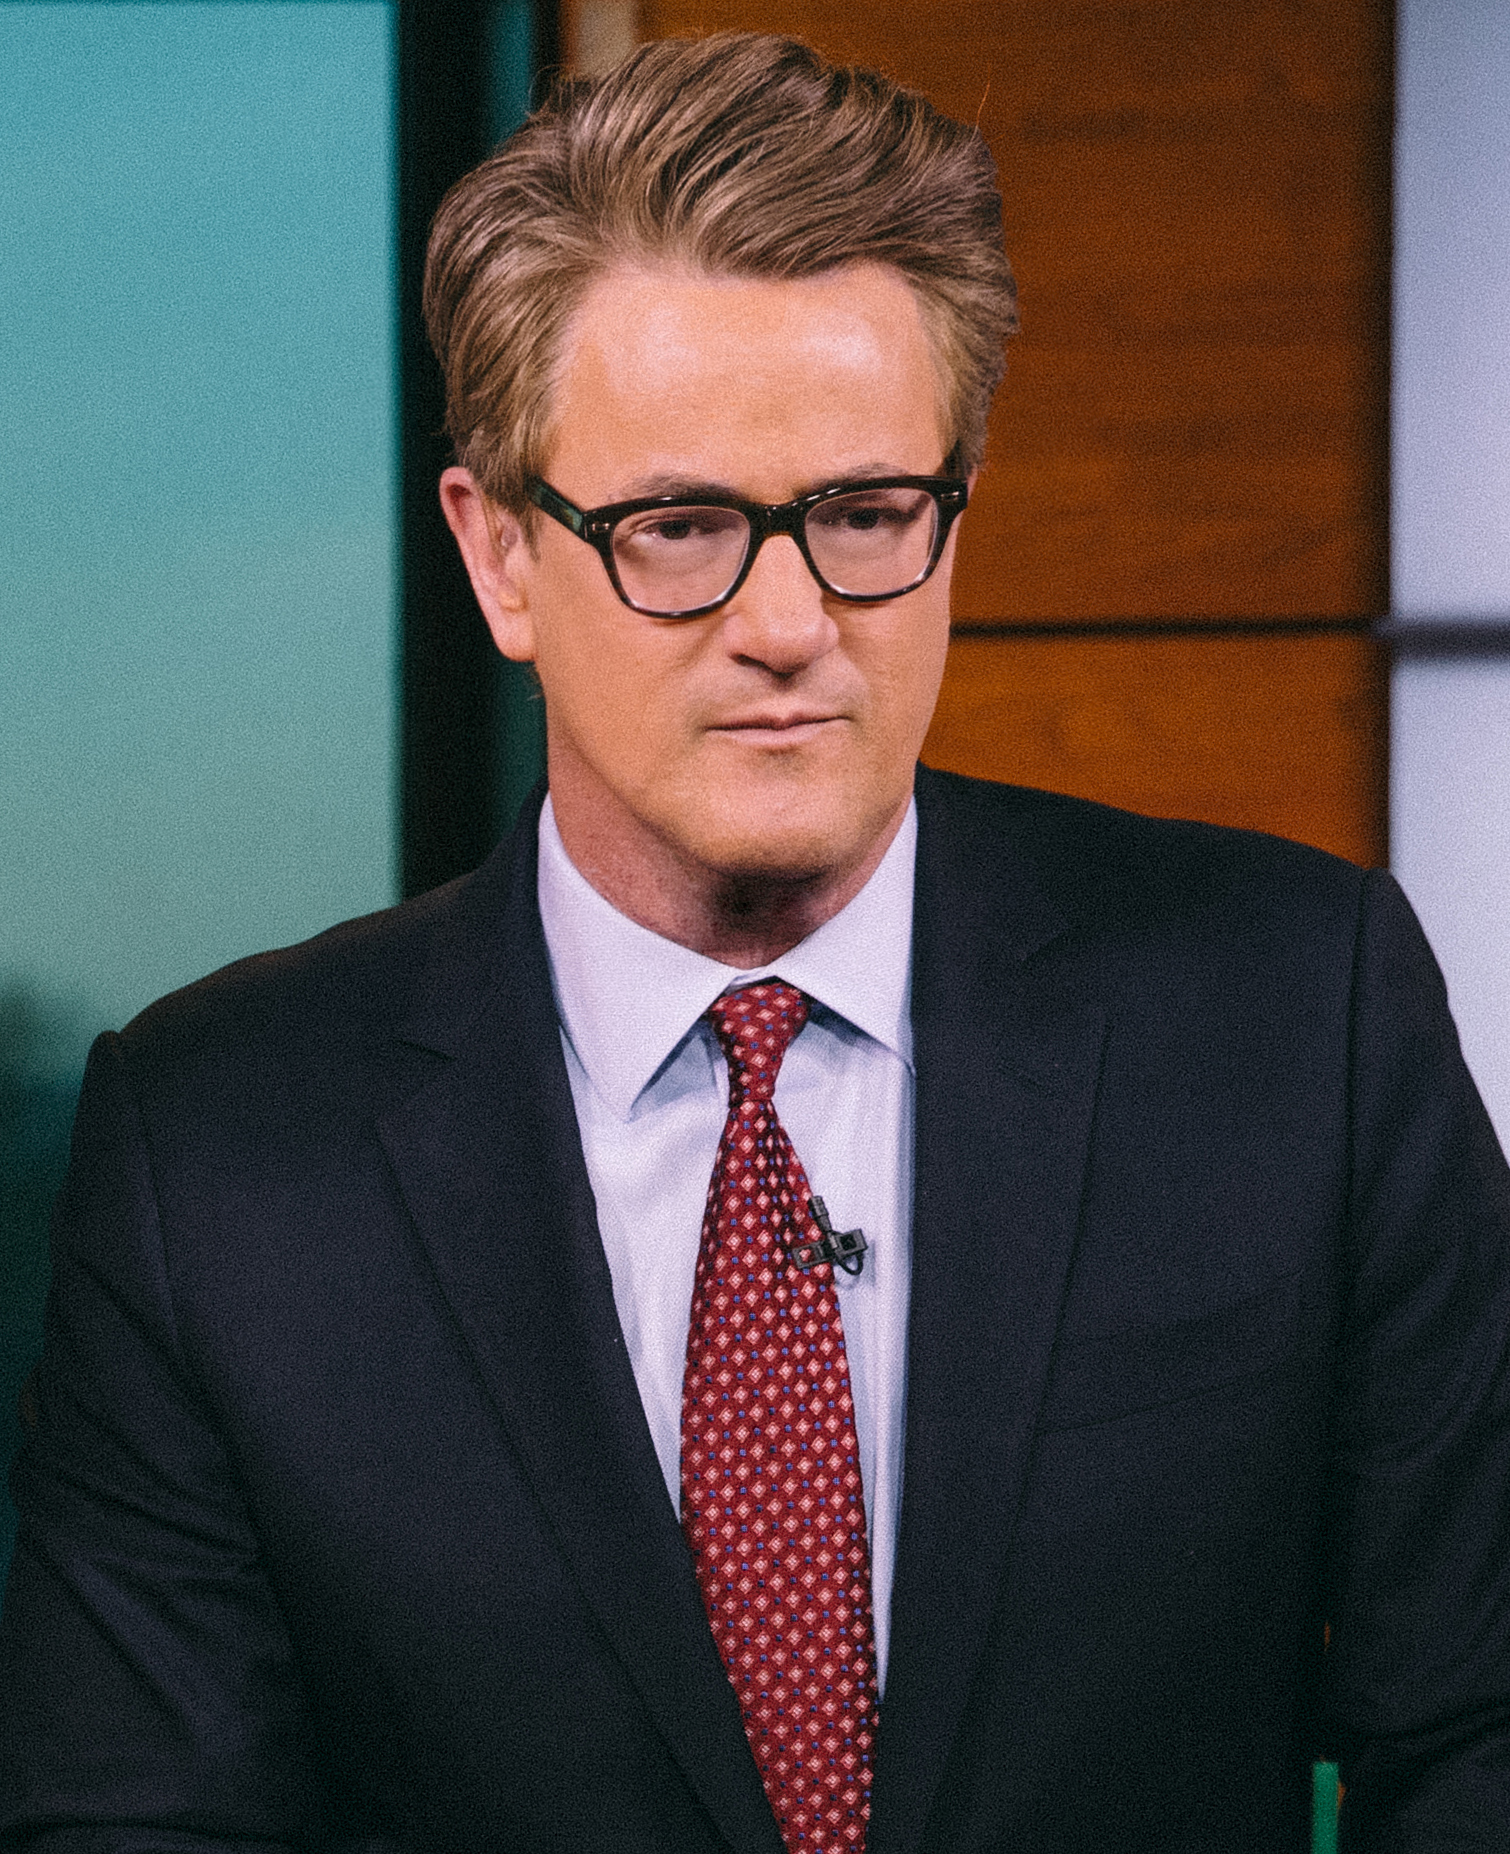 Joe_Scarborough_(NBC_News).jpg